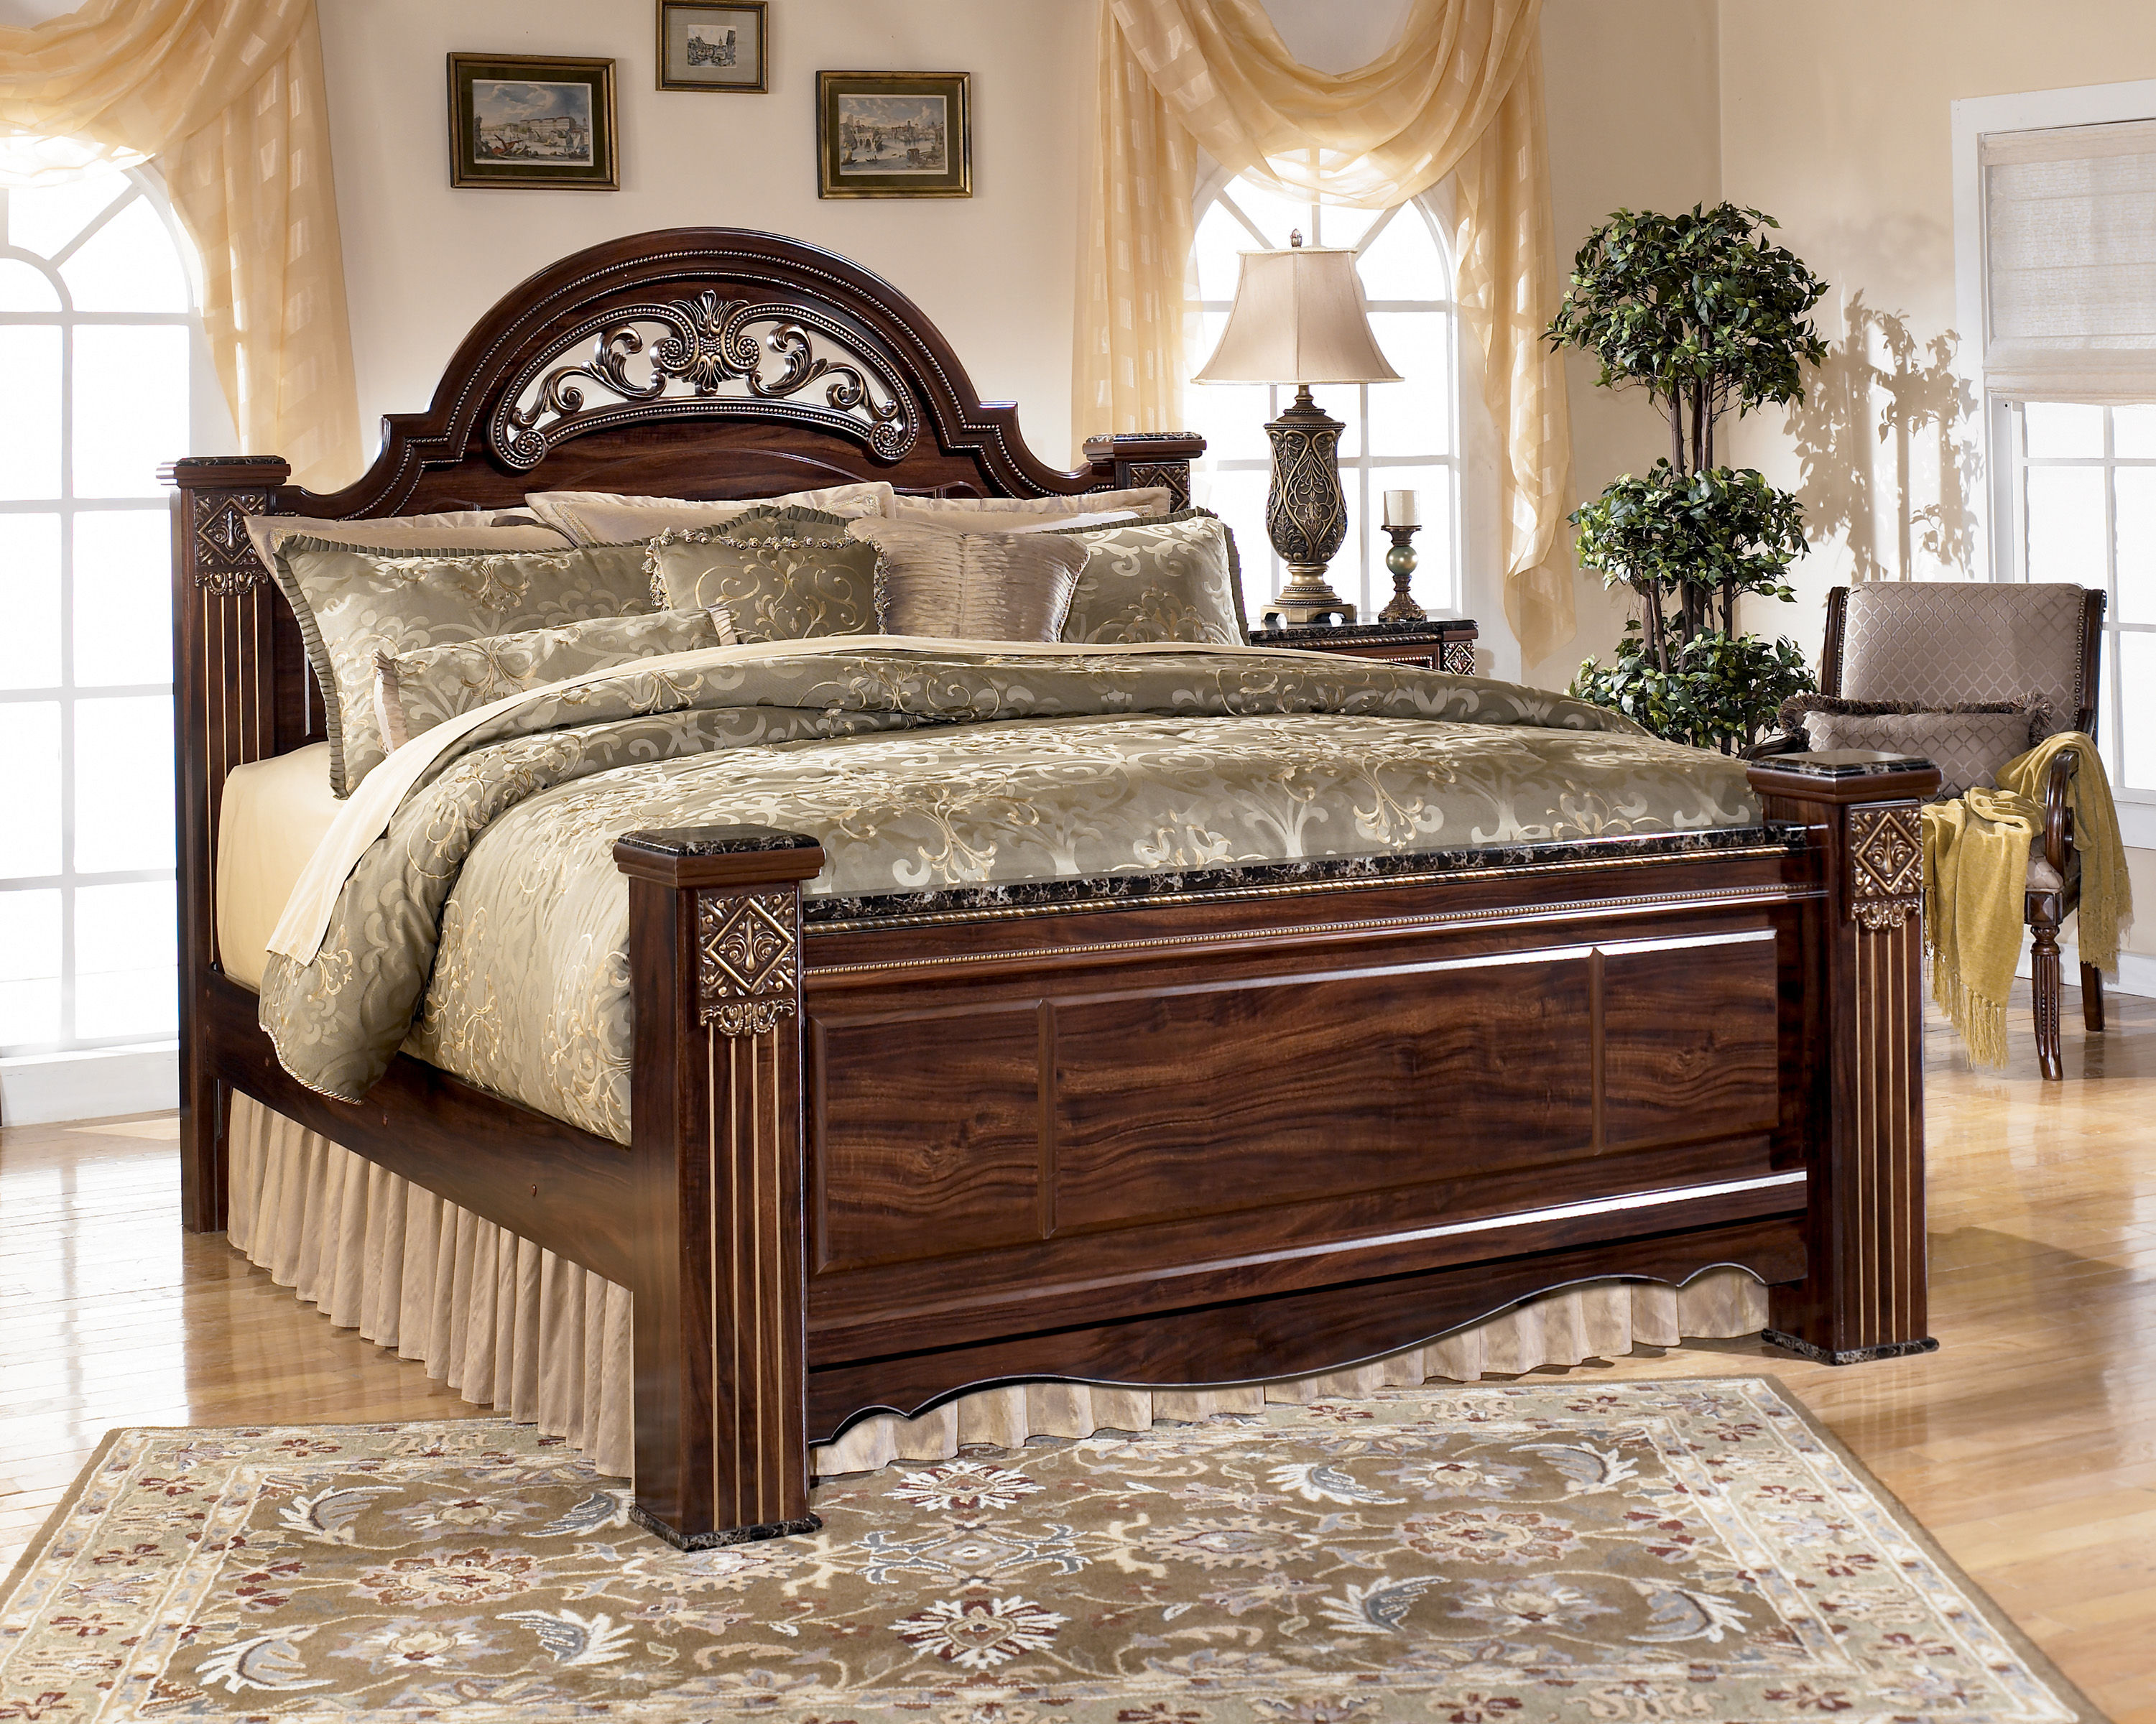 Ashley Furniture Gabriela King Poster Bed The Classy Home